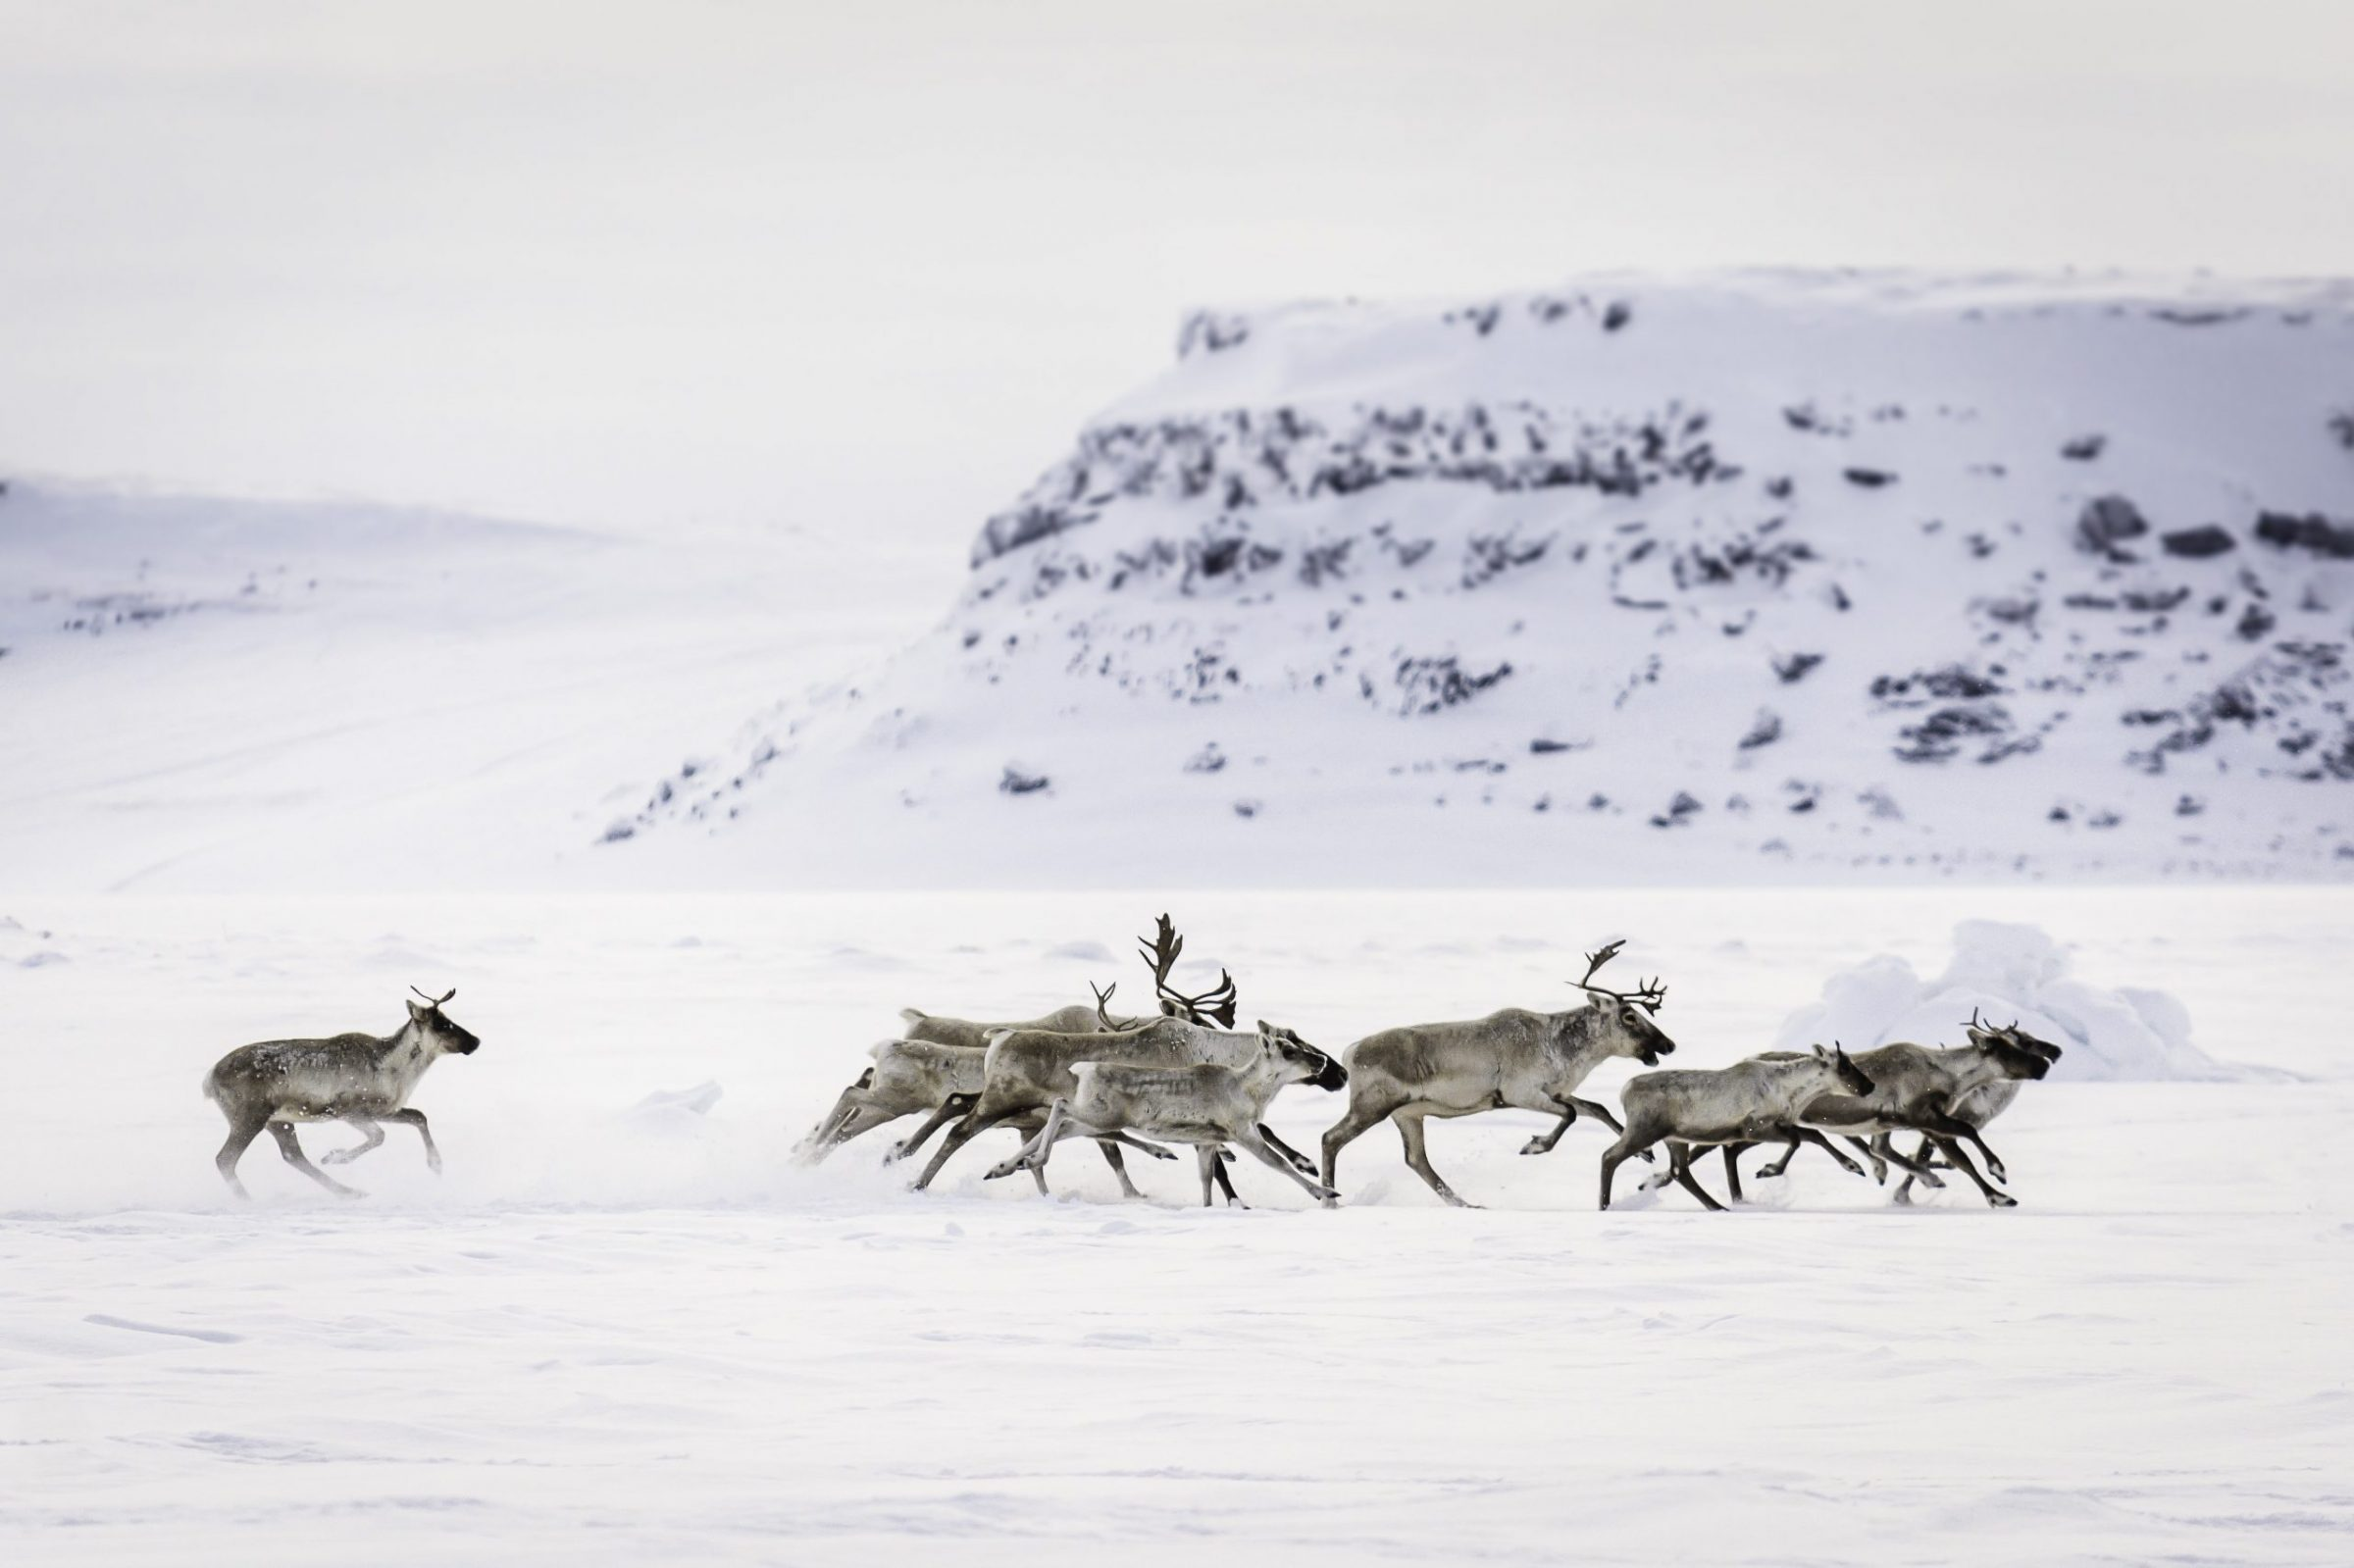 Caribou, part of a herd of several hundred, are seen passing about two kilometres from Inukjuak on Wednesday, Jan. 13. (Photo by Sylvain Paradis)